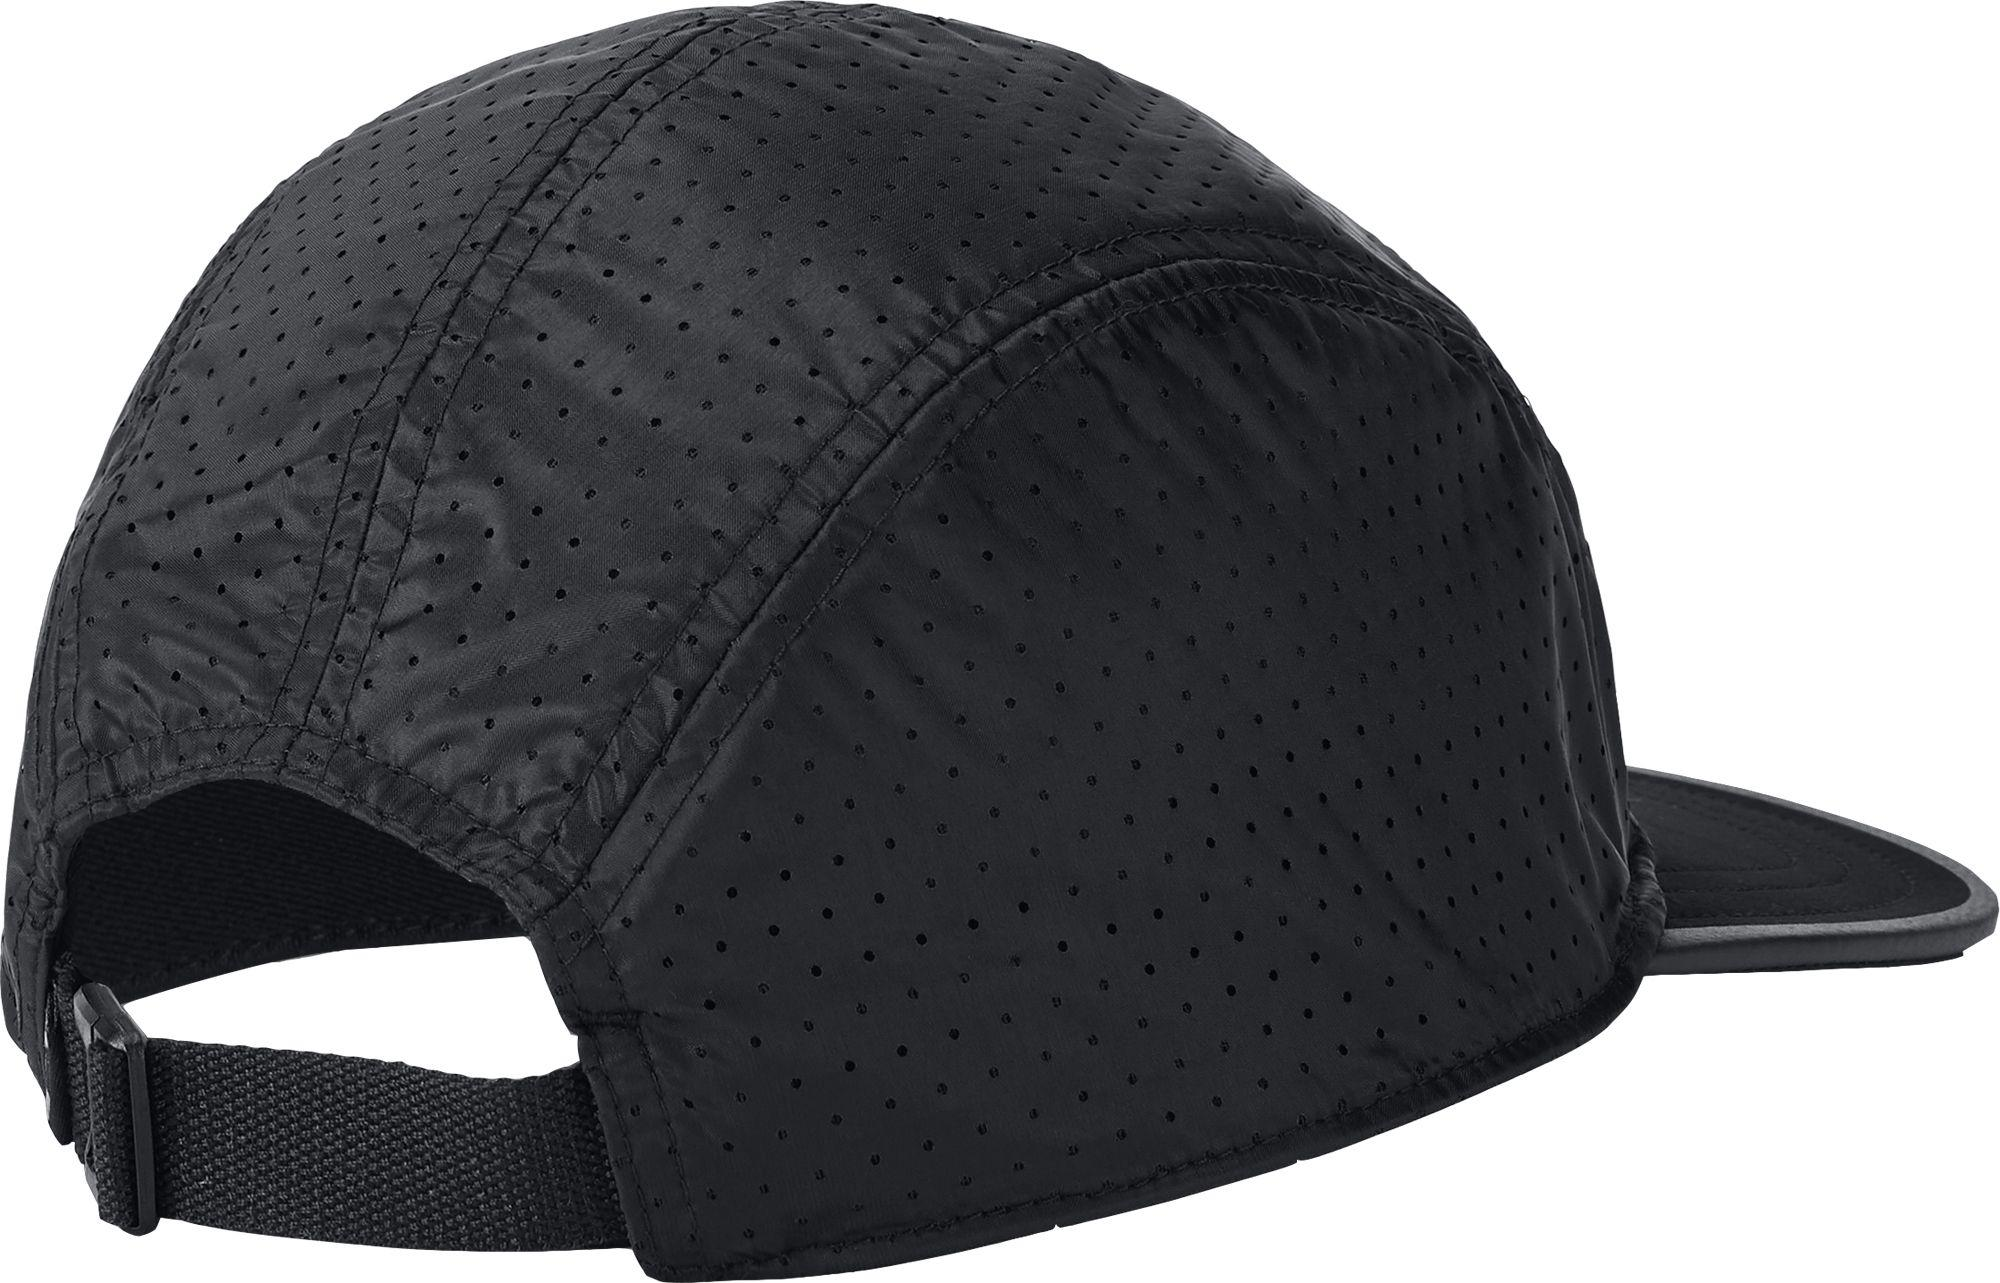 e3ab3617446 Under Armour - Black Windbreaker Camper Cap for Men - Lyst. View fullscreen